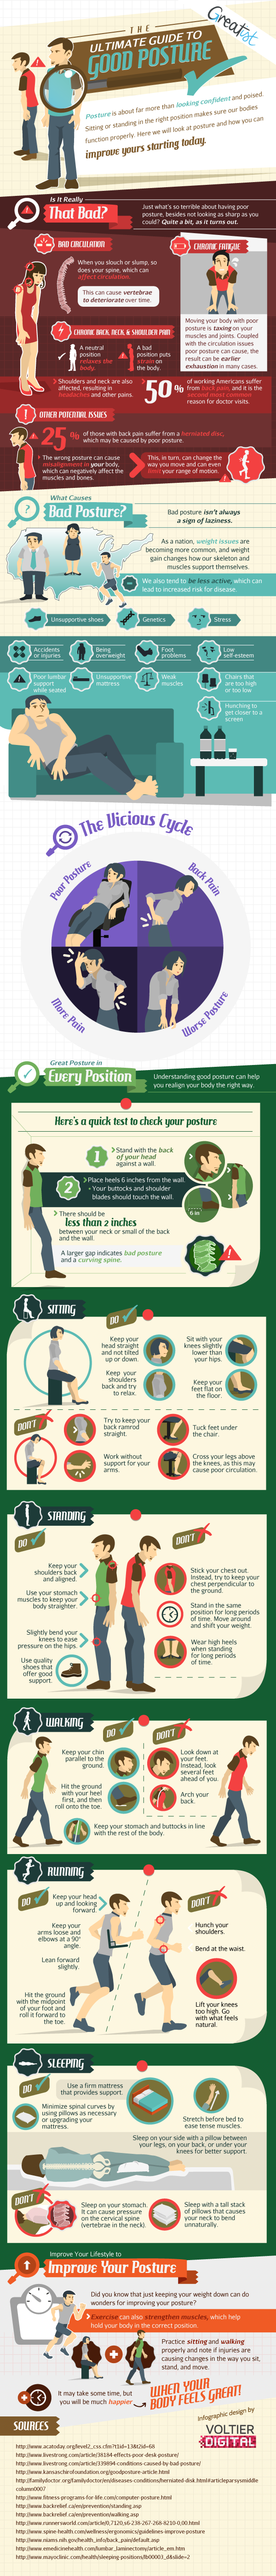 Everything You Need To Know About Good Posture